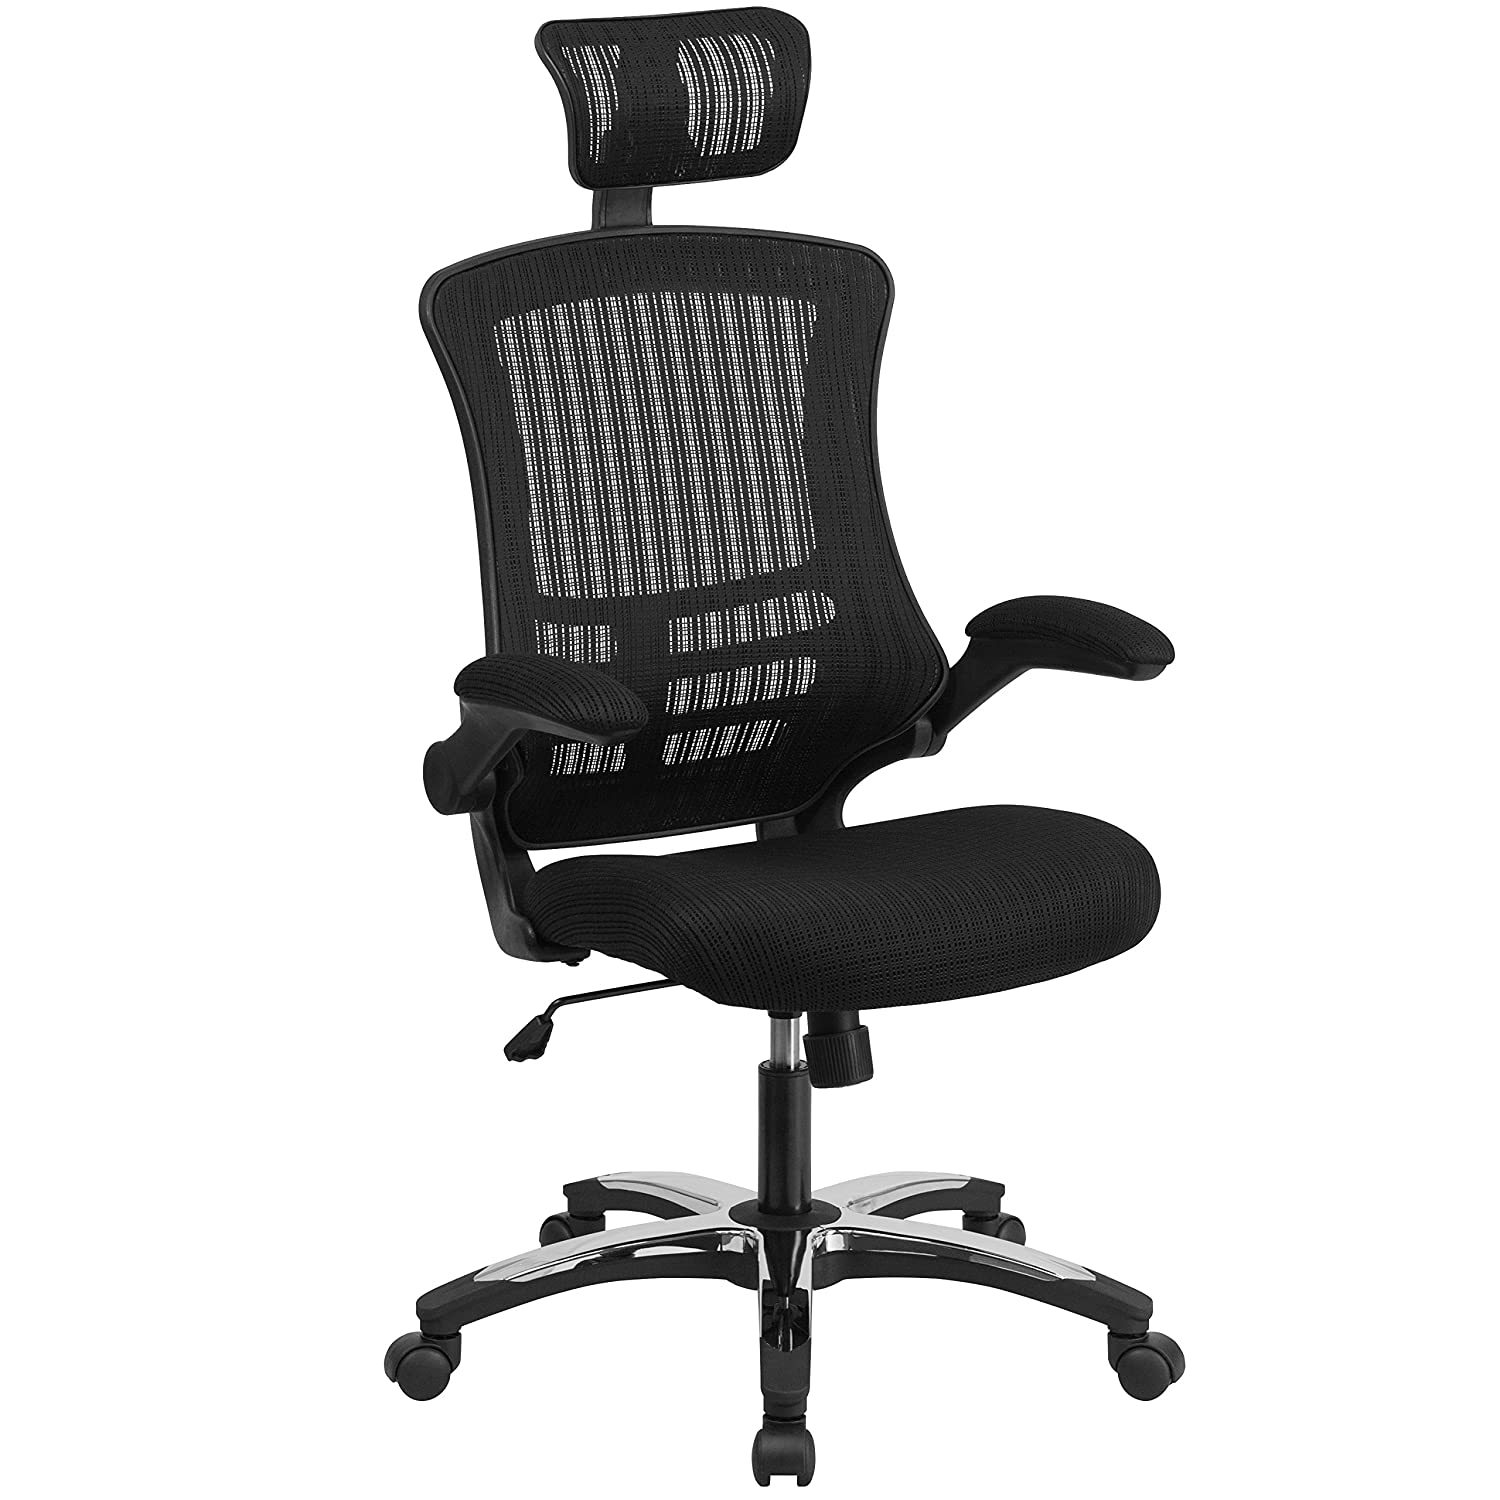 Amazon.com: High Back Black Mesh Executive Swivel Office Chair with Flip-Up  Arms and Chrome-Nylon Designer Base: Kitchen & Dining - Amazon.com: High Back Black Mesh Executive Swivel Office Chair